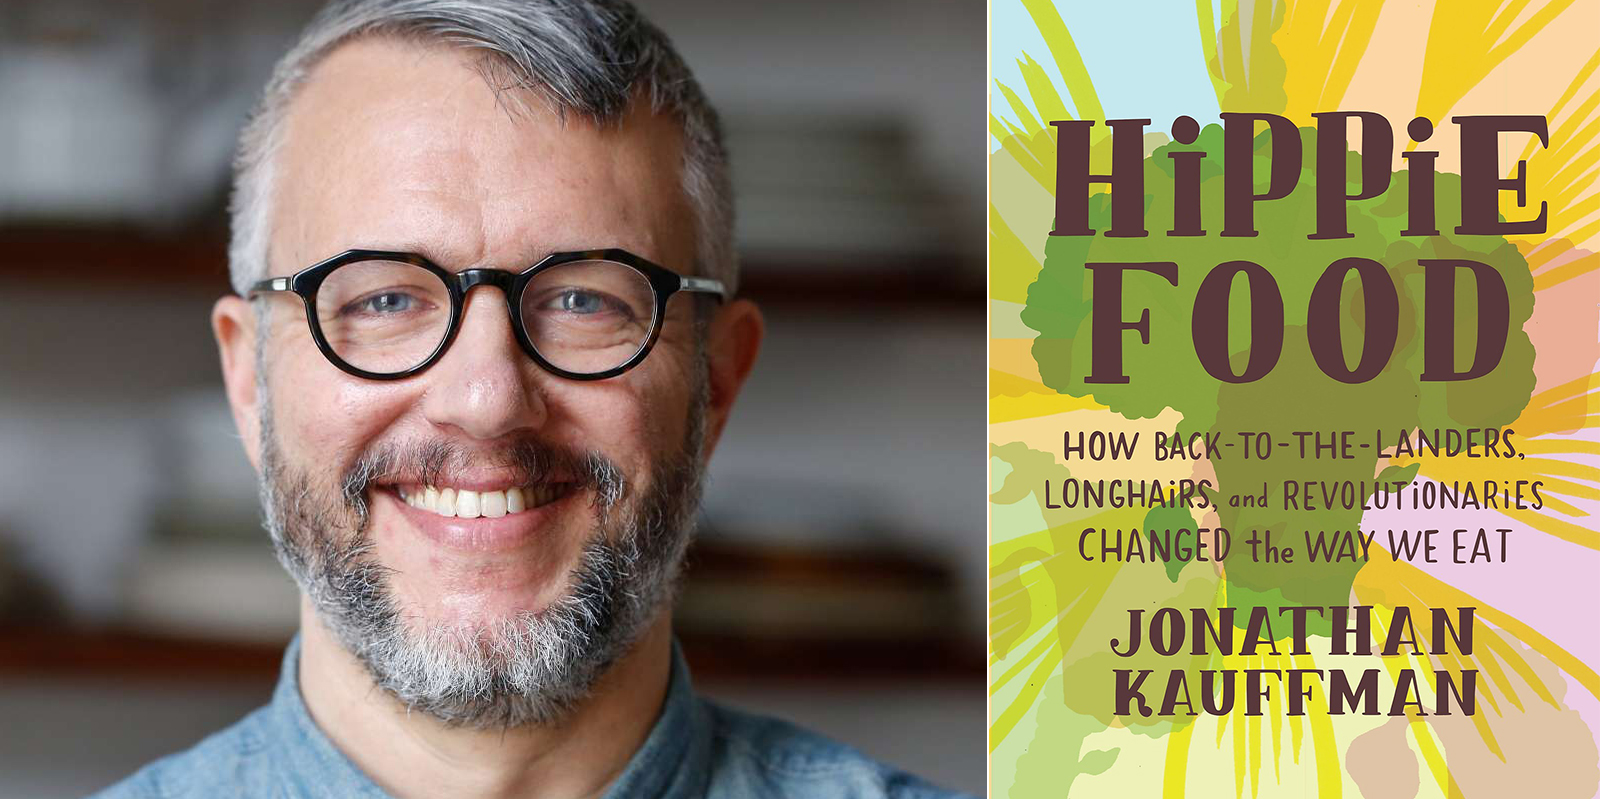 Hippie Food- How Back-to-the-Landers, Longhairs, and Revolutionaries Changed the Way We Eat, by Jonathan Kauffman